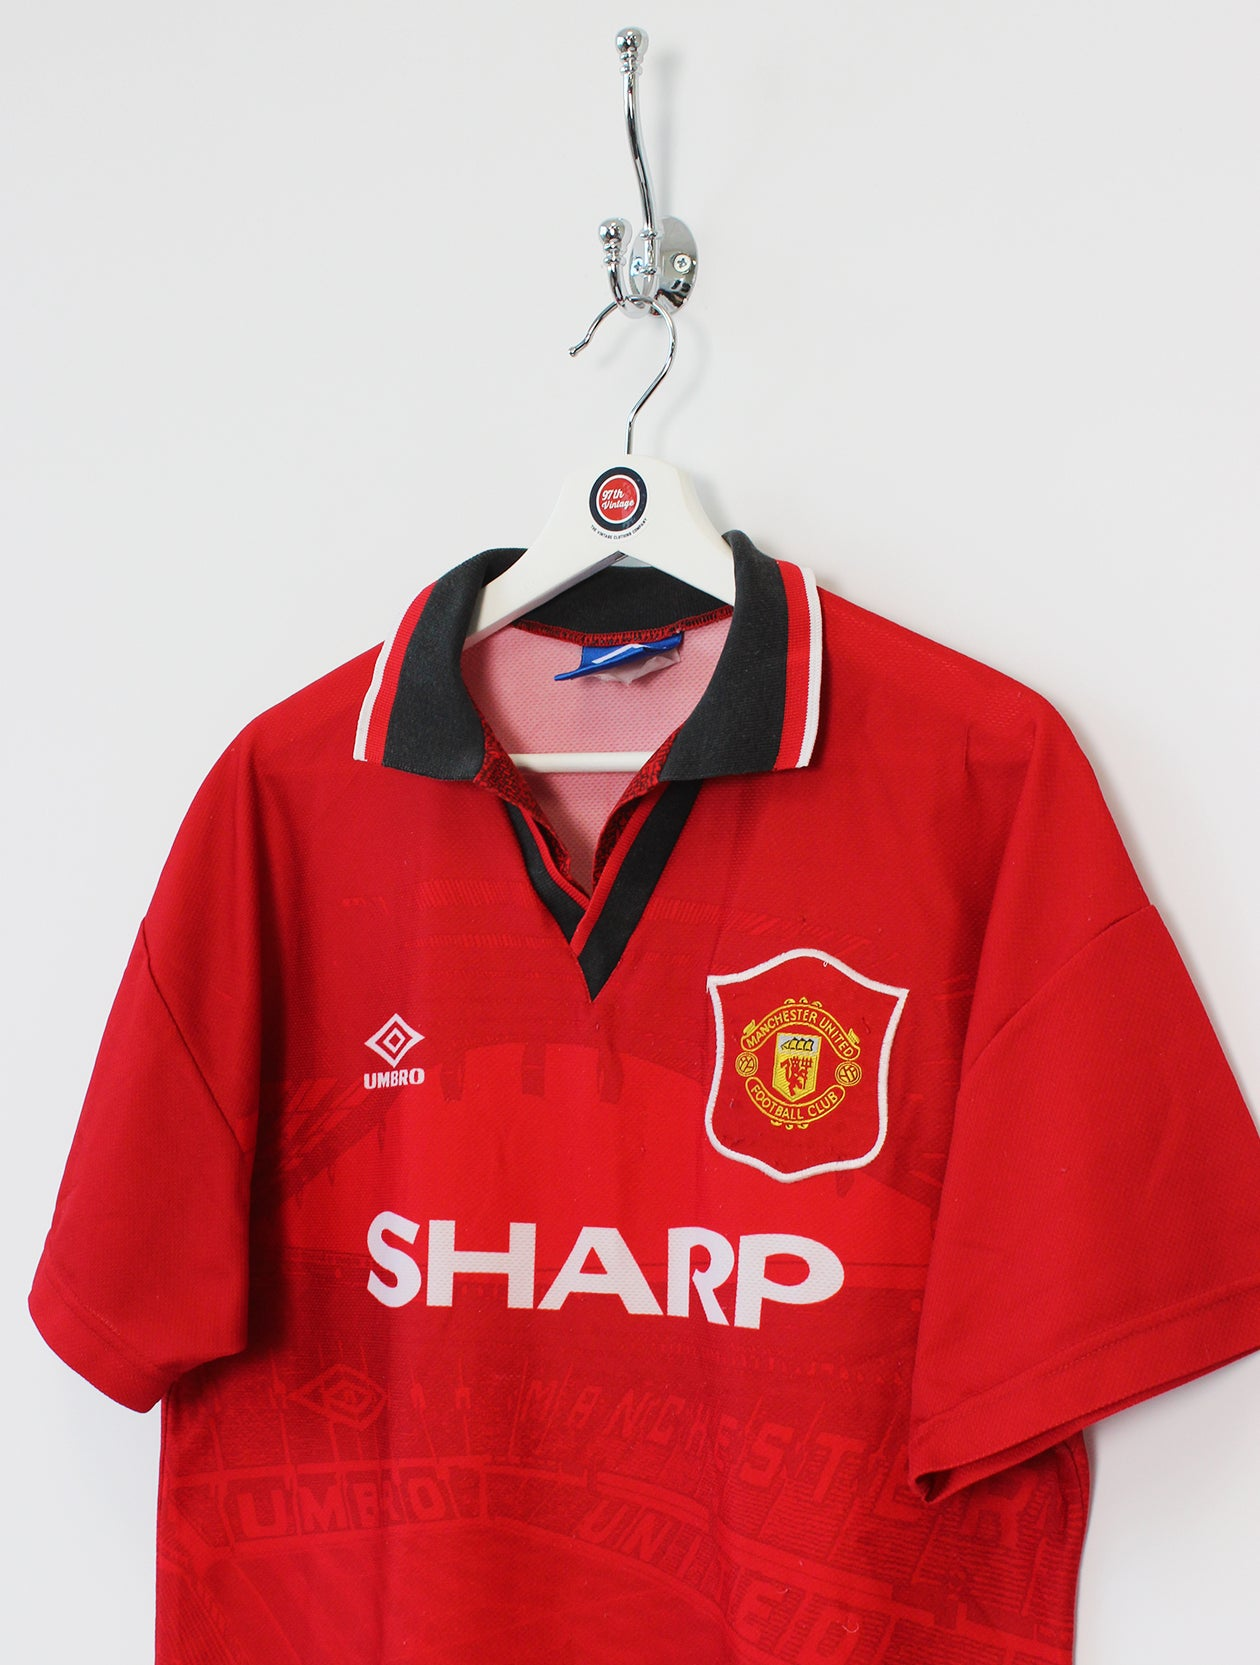 4cc30bb25ac Man United Signed Football Shirts - DREAMWORKS